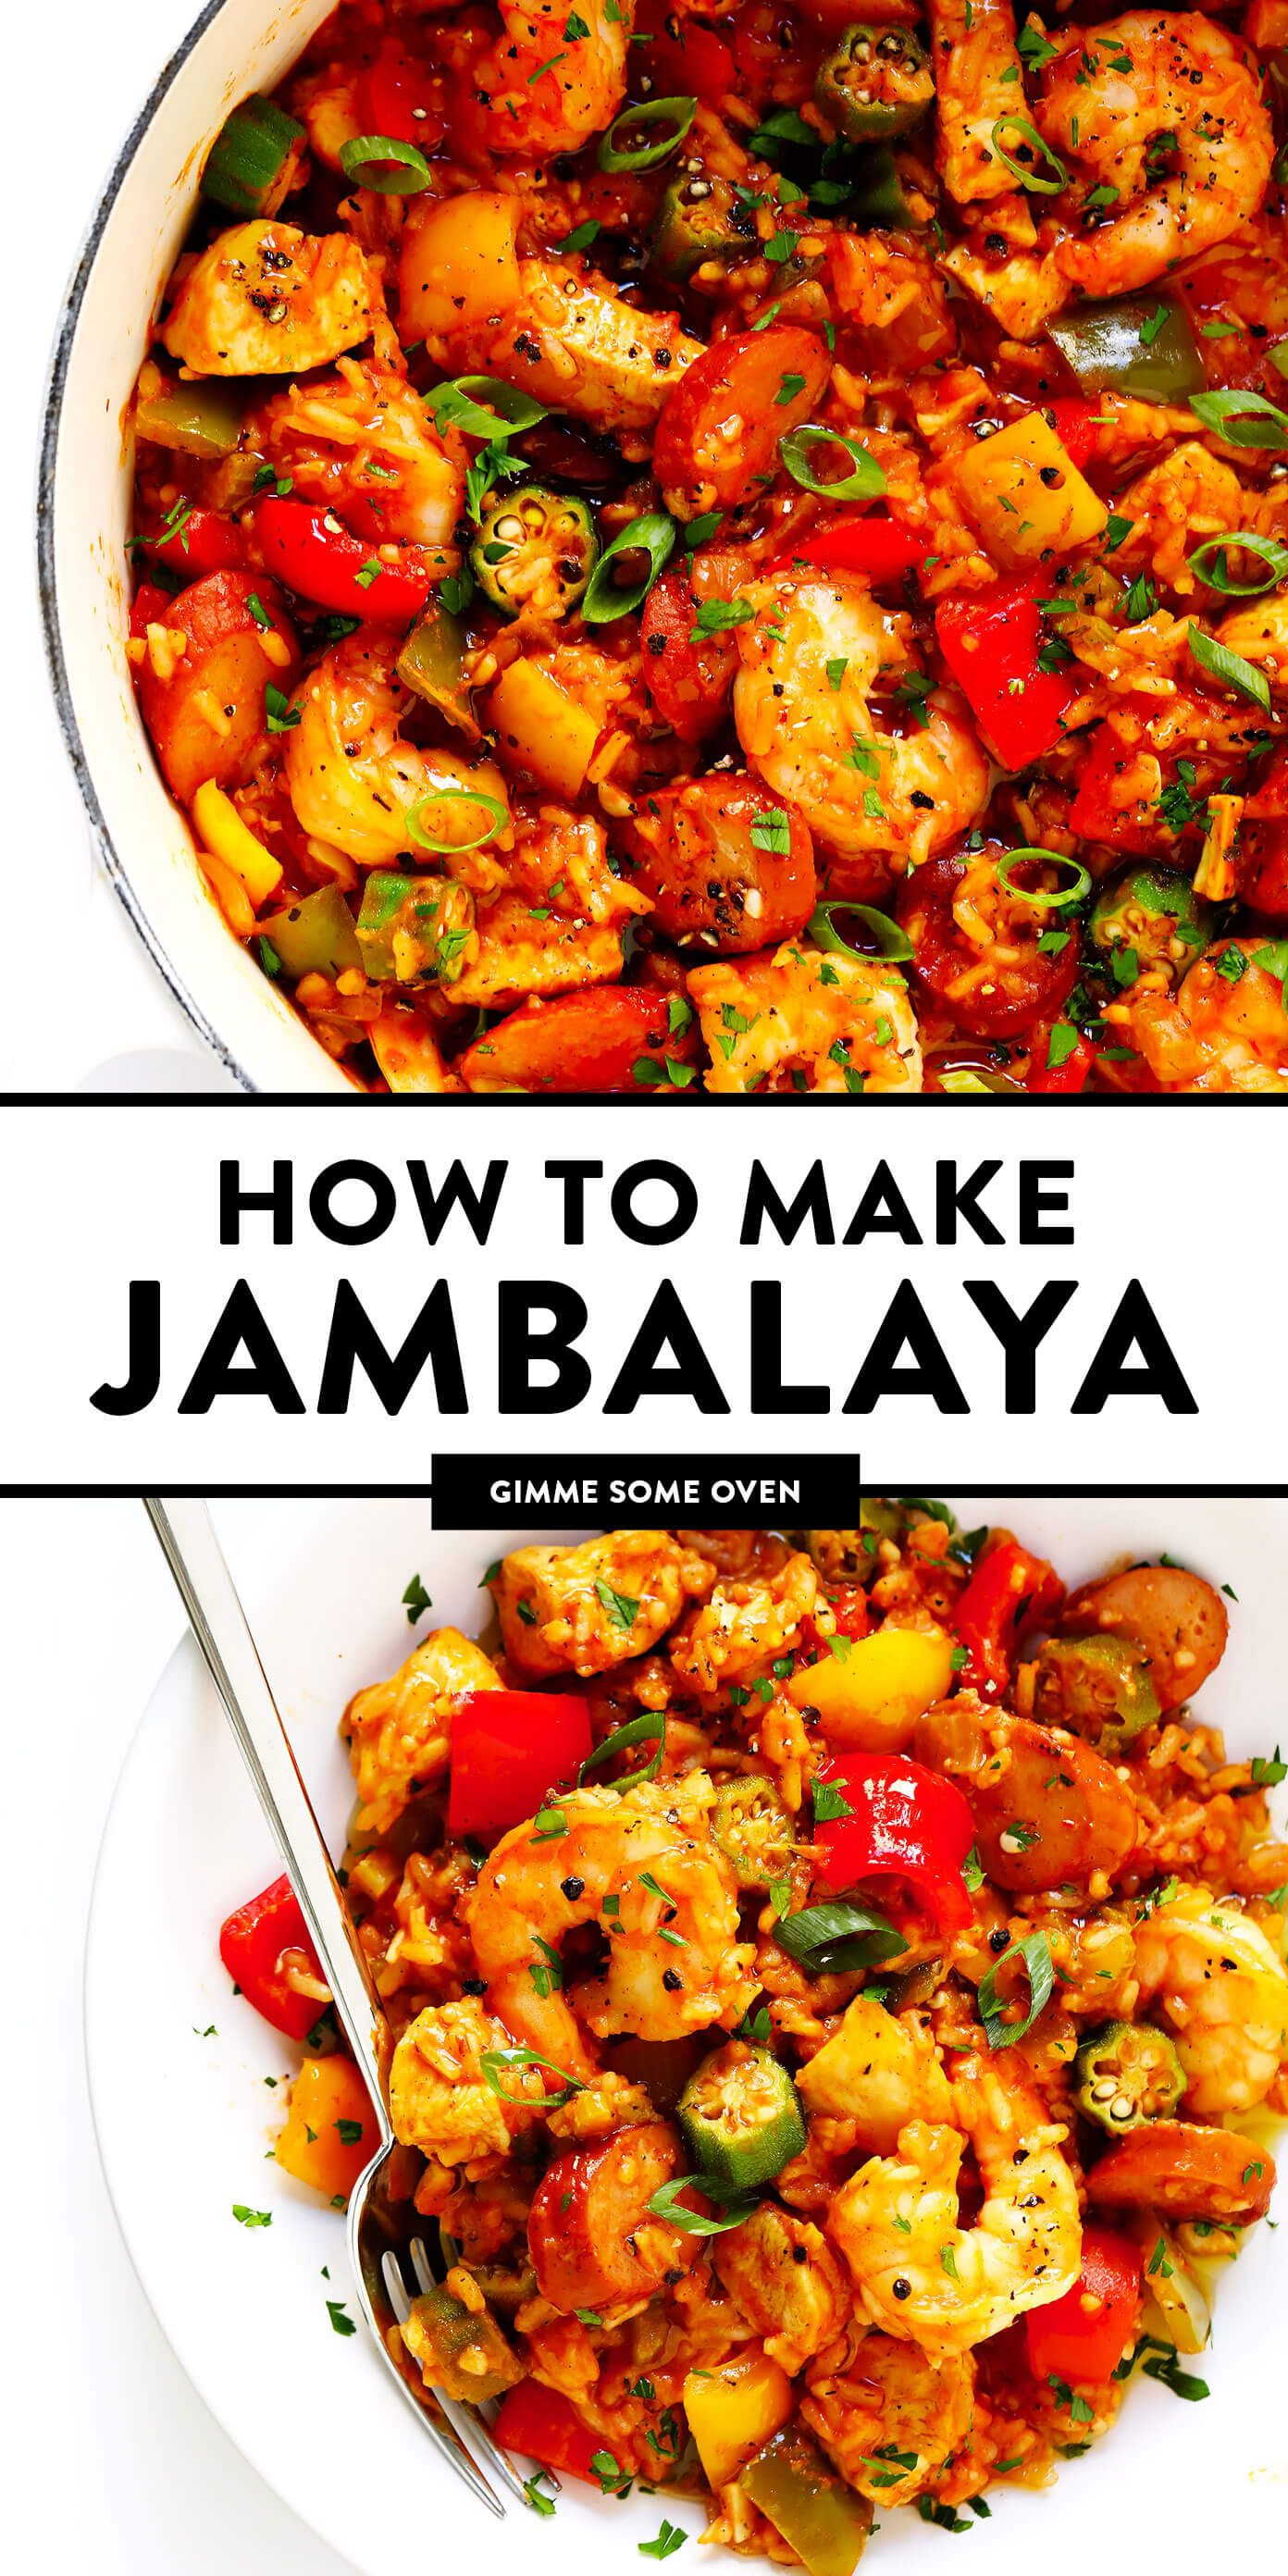 Jambalaya Recipe Food Jambalaya Recipe Best Jambalaya Recipe Cooking Recipes